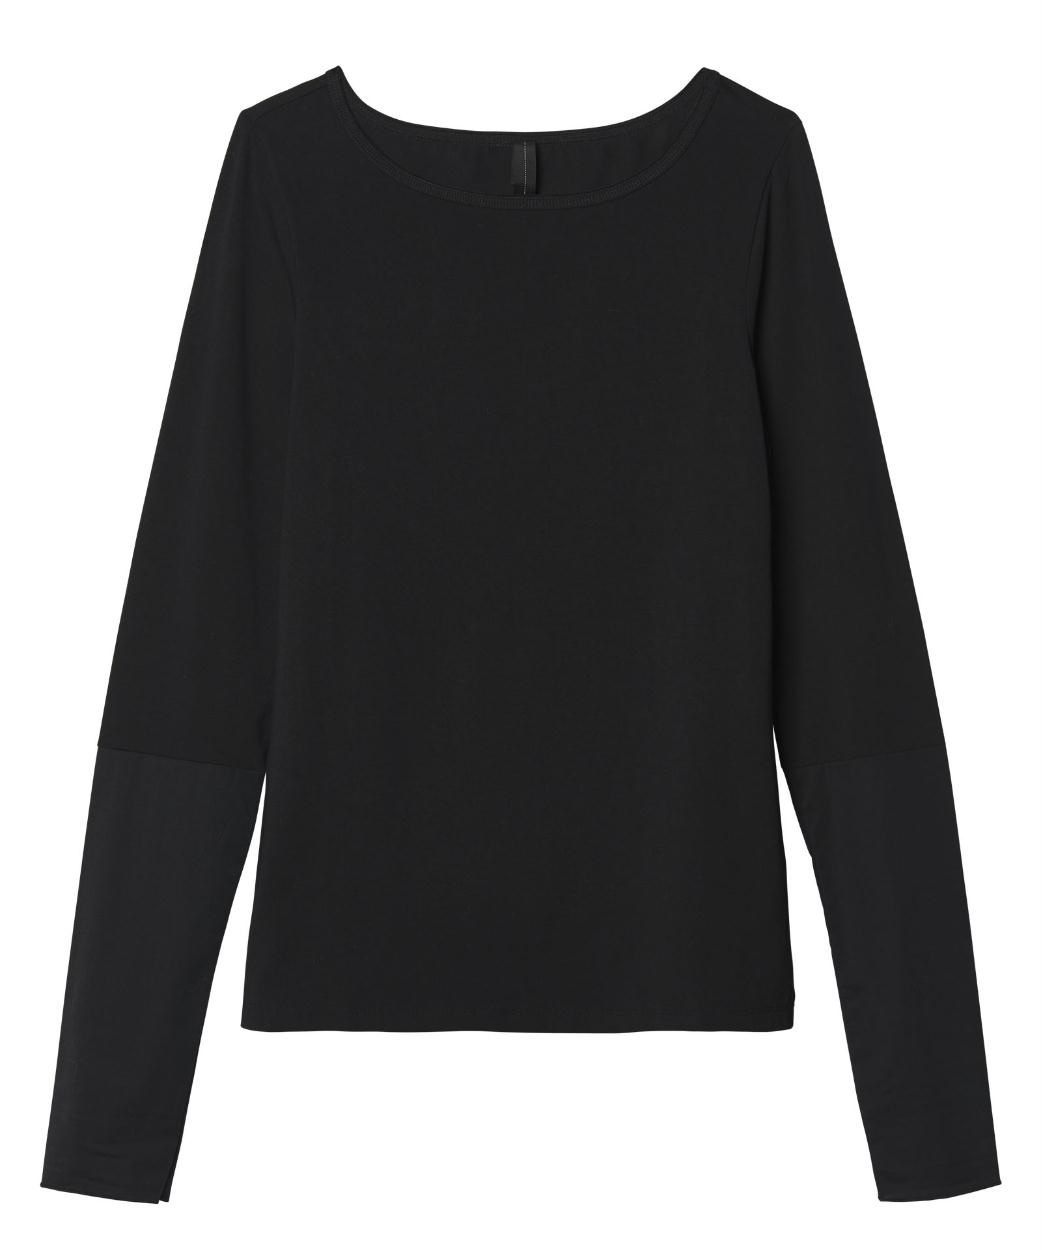 10Days Black Boatneck Tee Poplin 20.778.9103/9